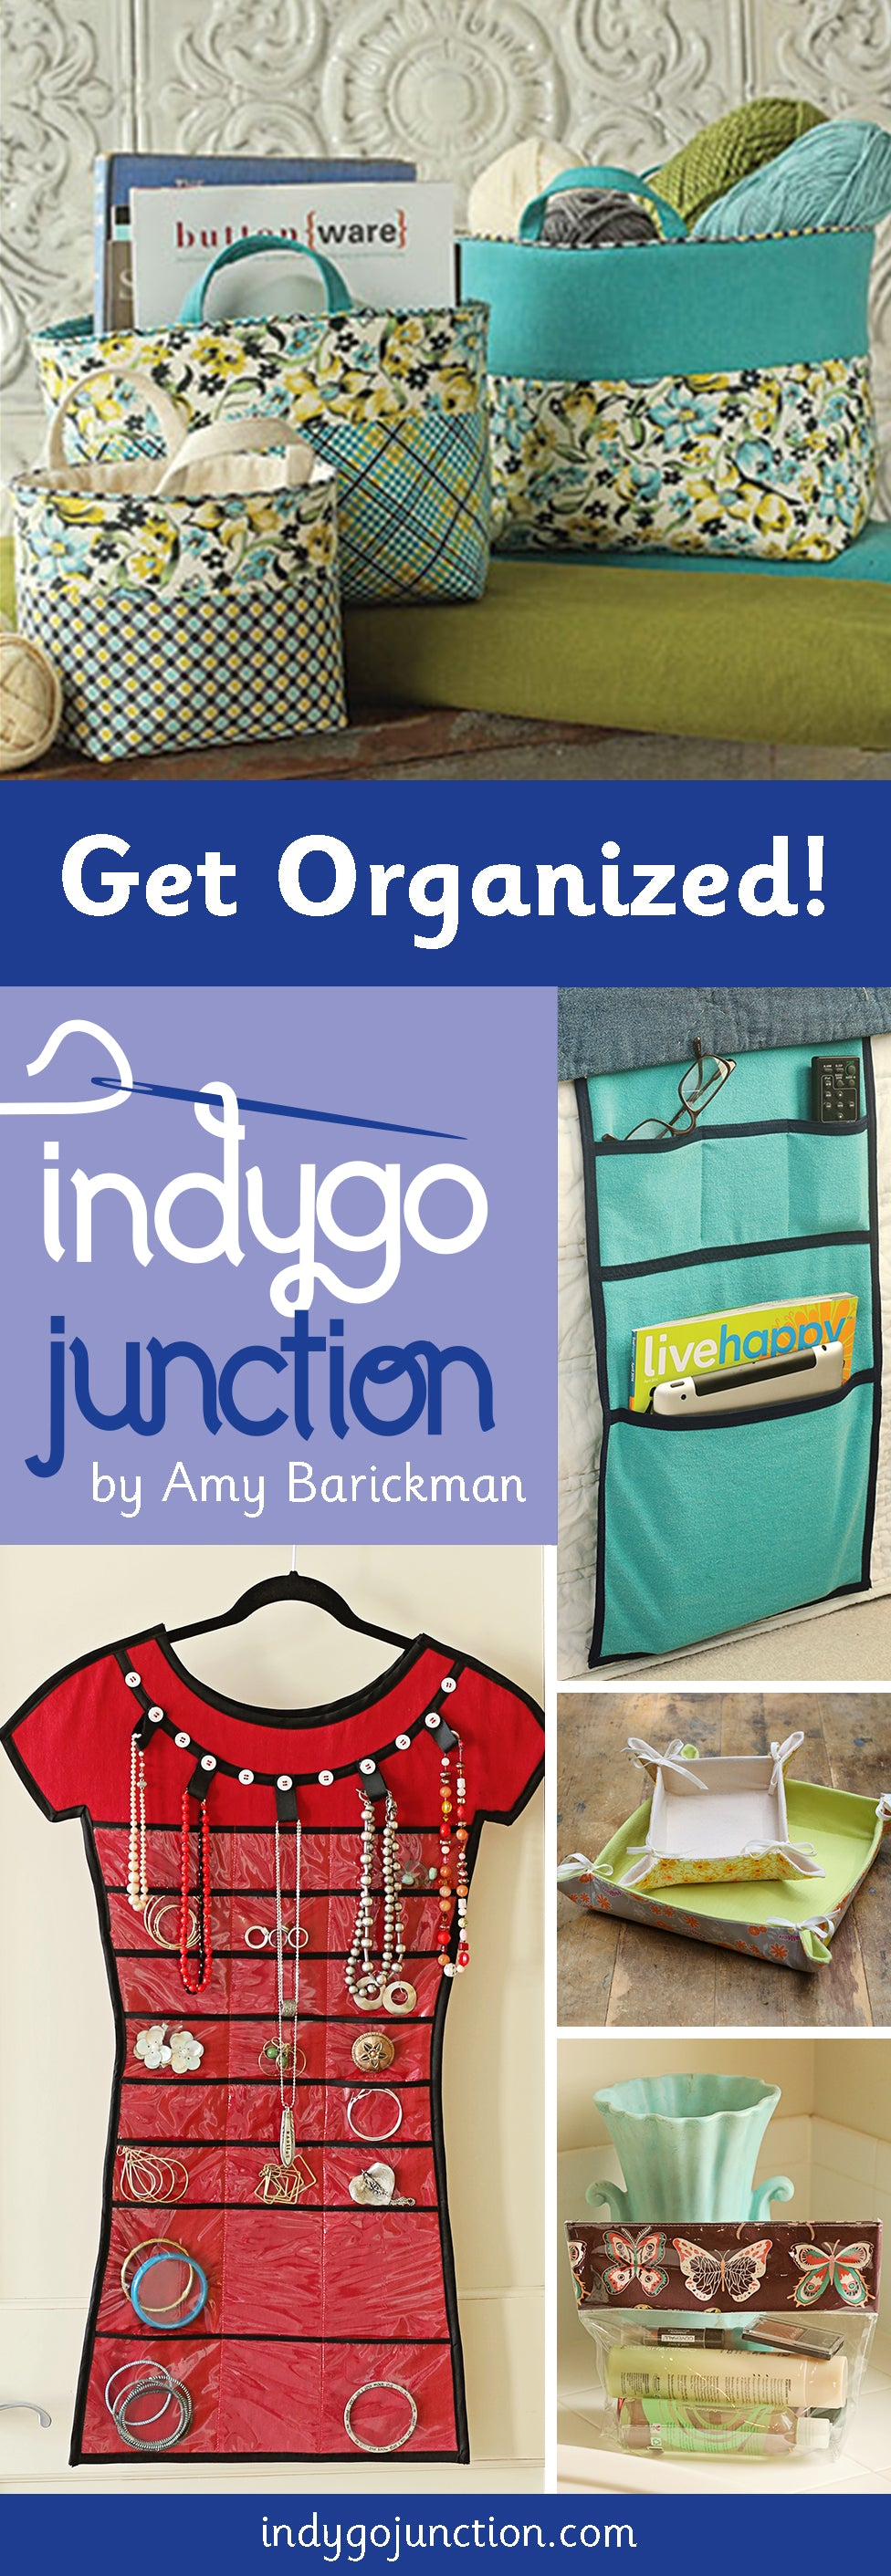 Get Organized beautifully with Indygo Junction's great round up of home organization patterns!